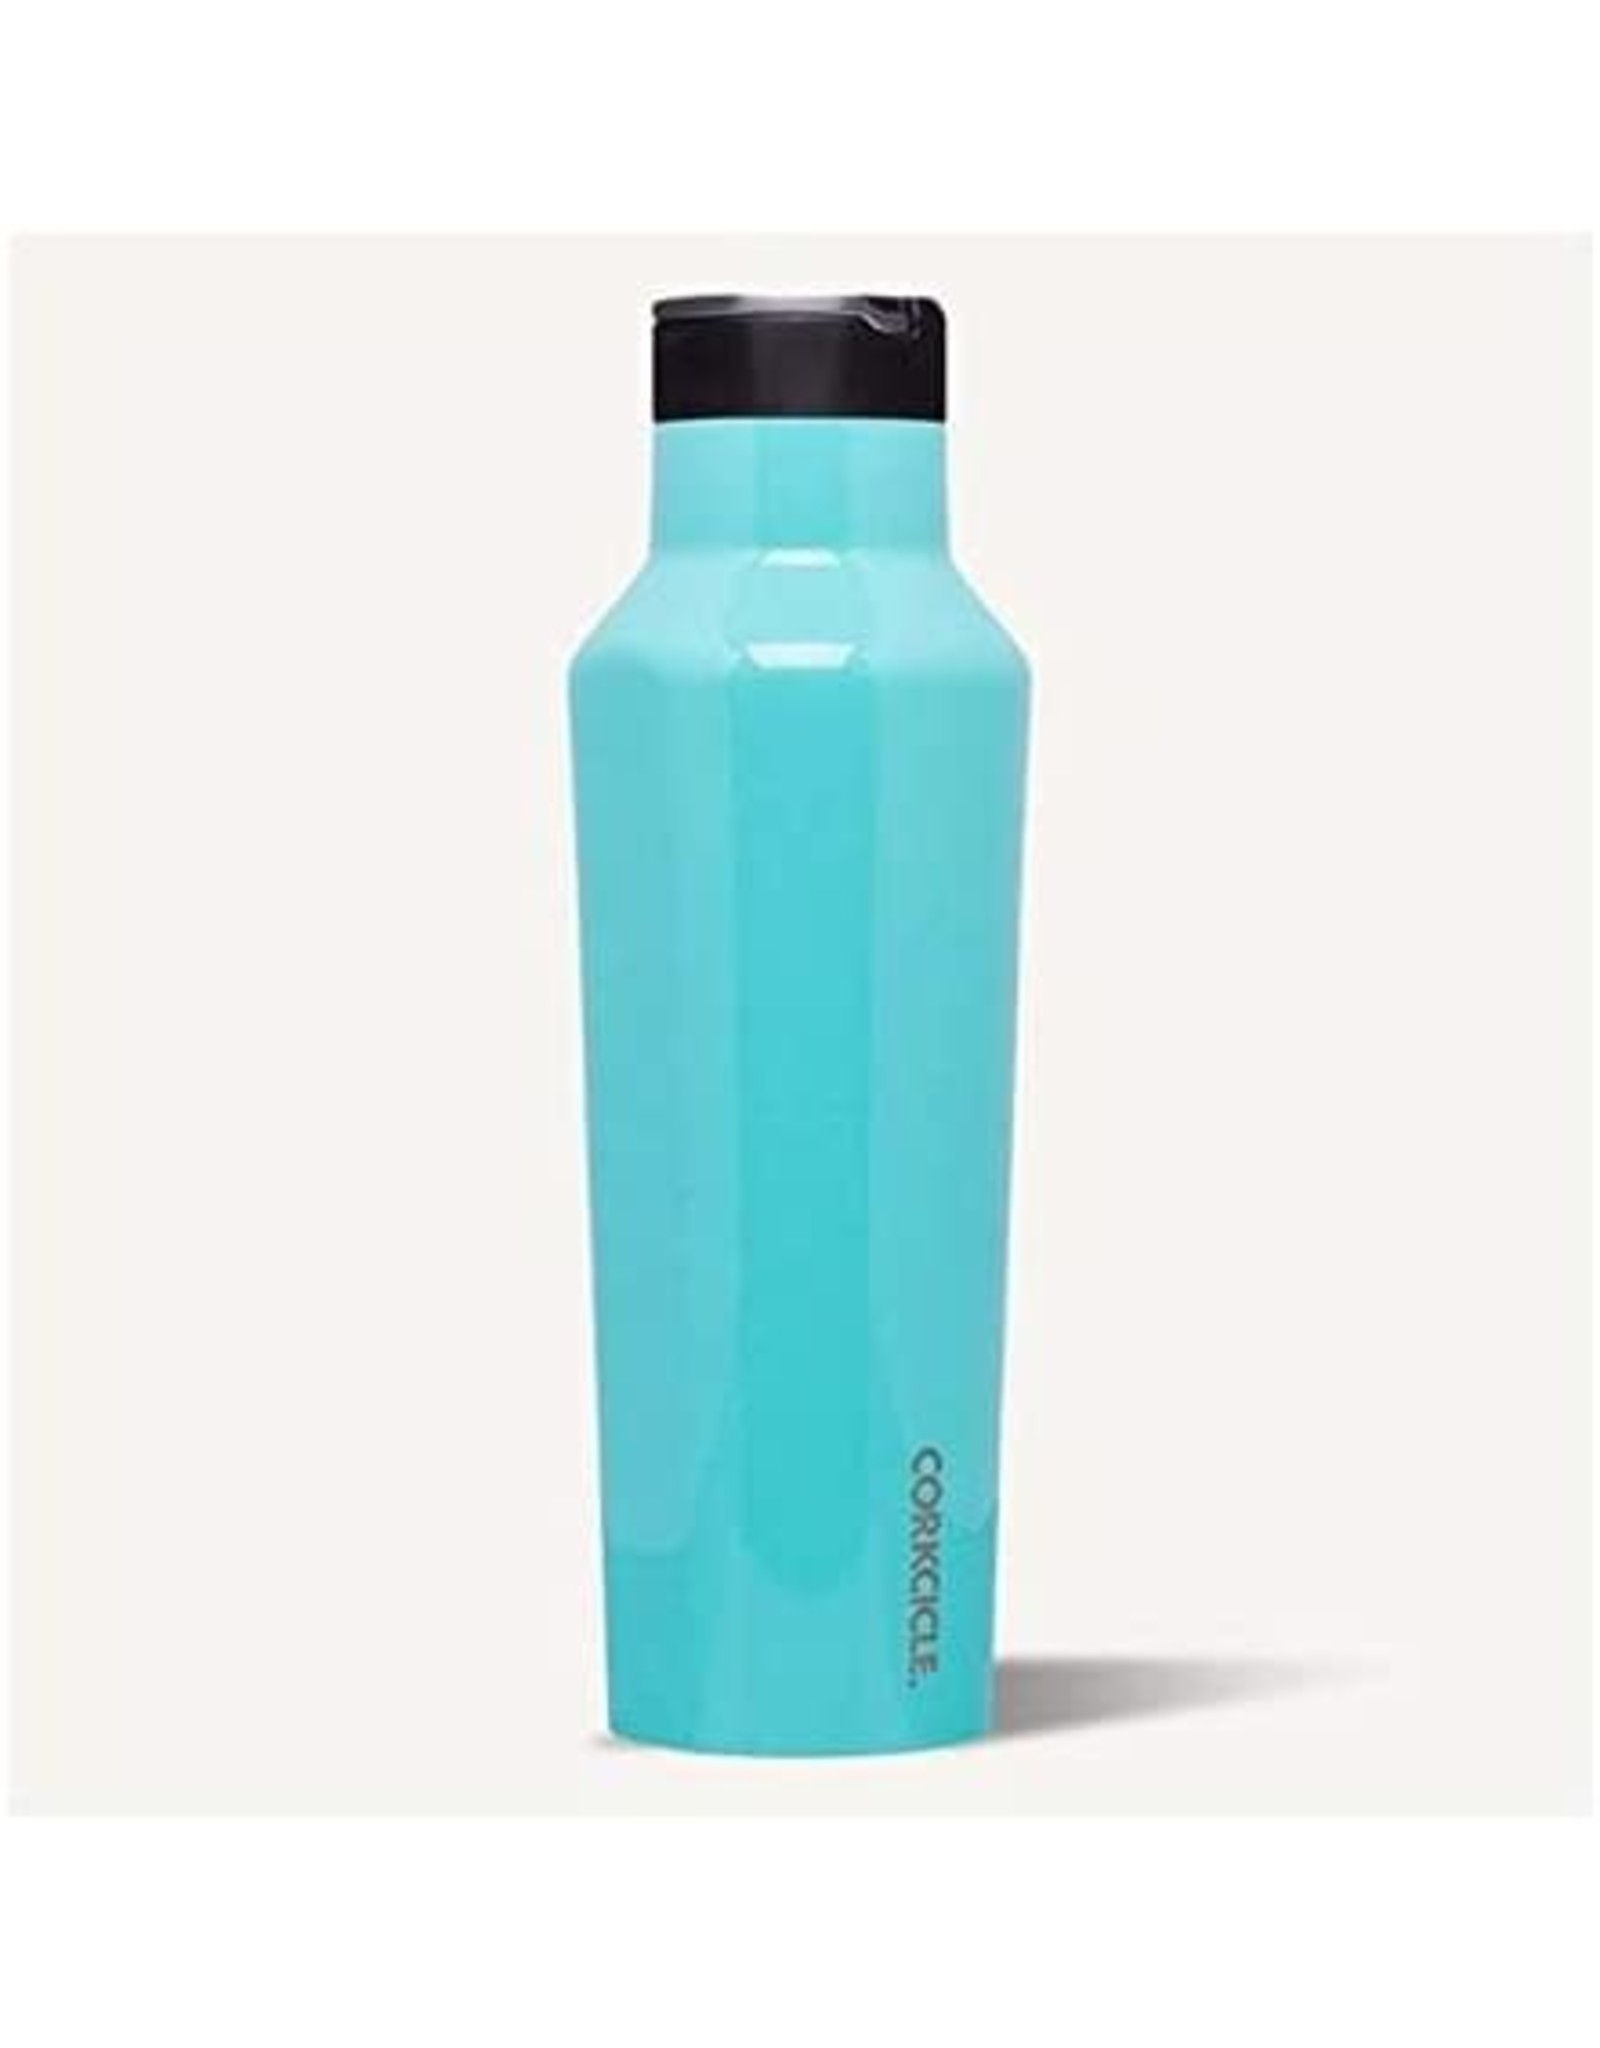 Corkcicle CORKCICLE Sport Canteen 20oz - Turquoise